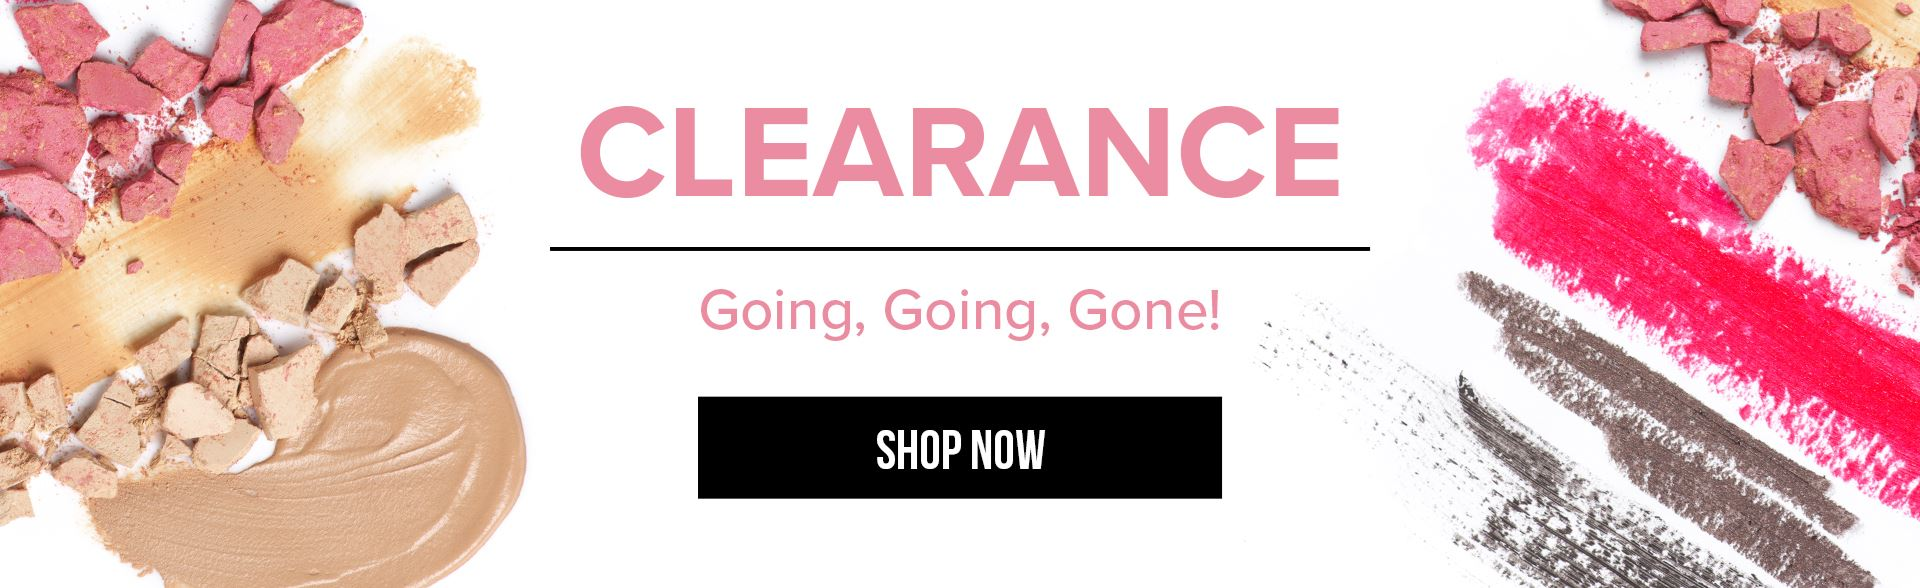 Clearance. Going, Going, Gone! Shop Now!